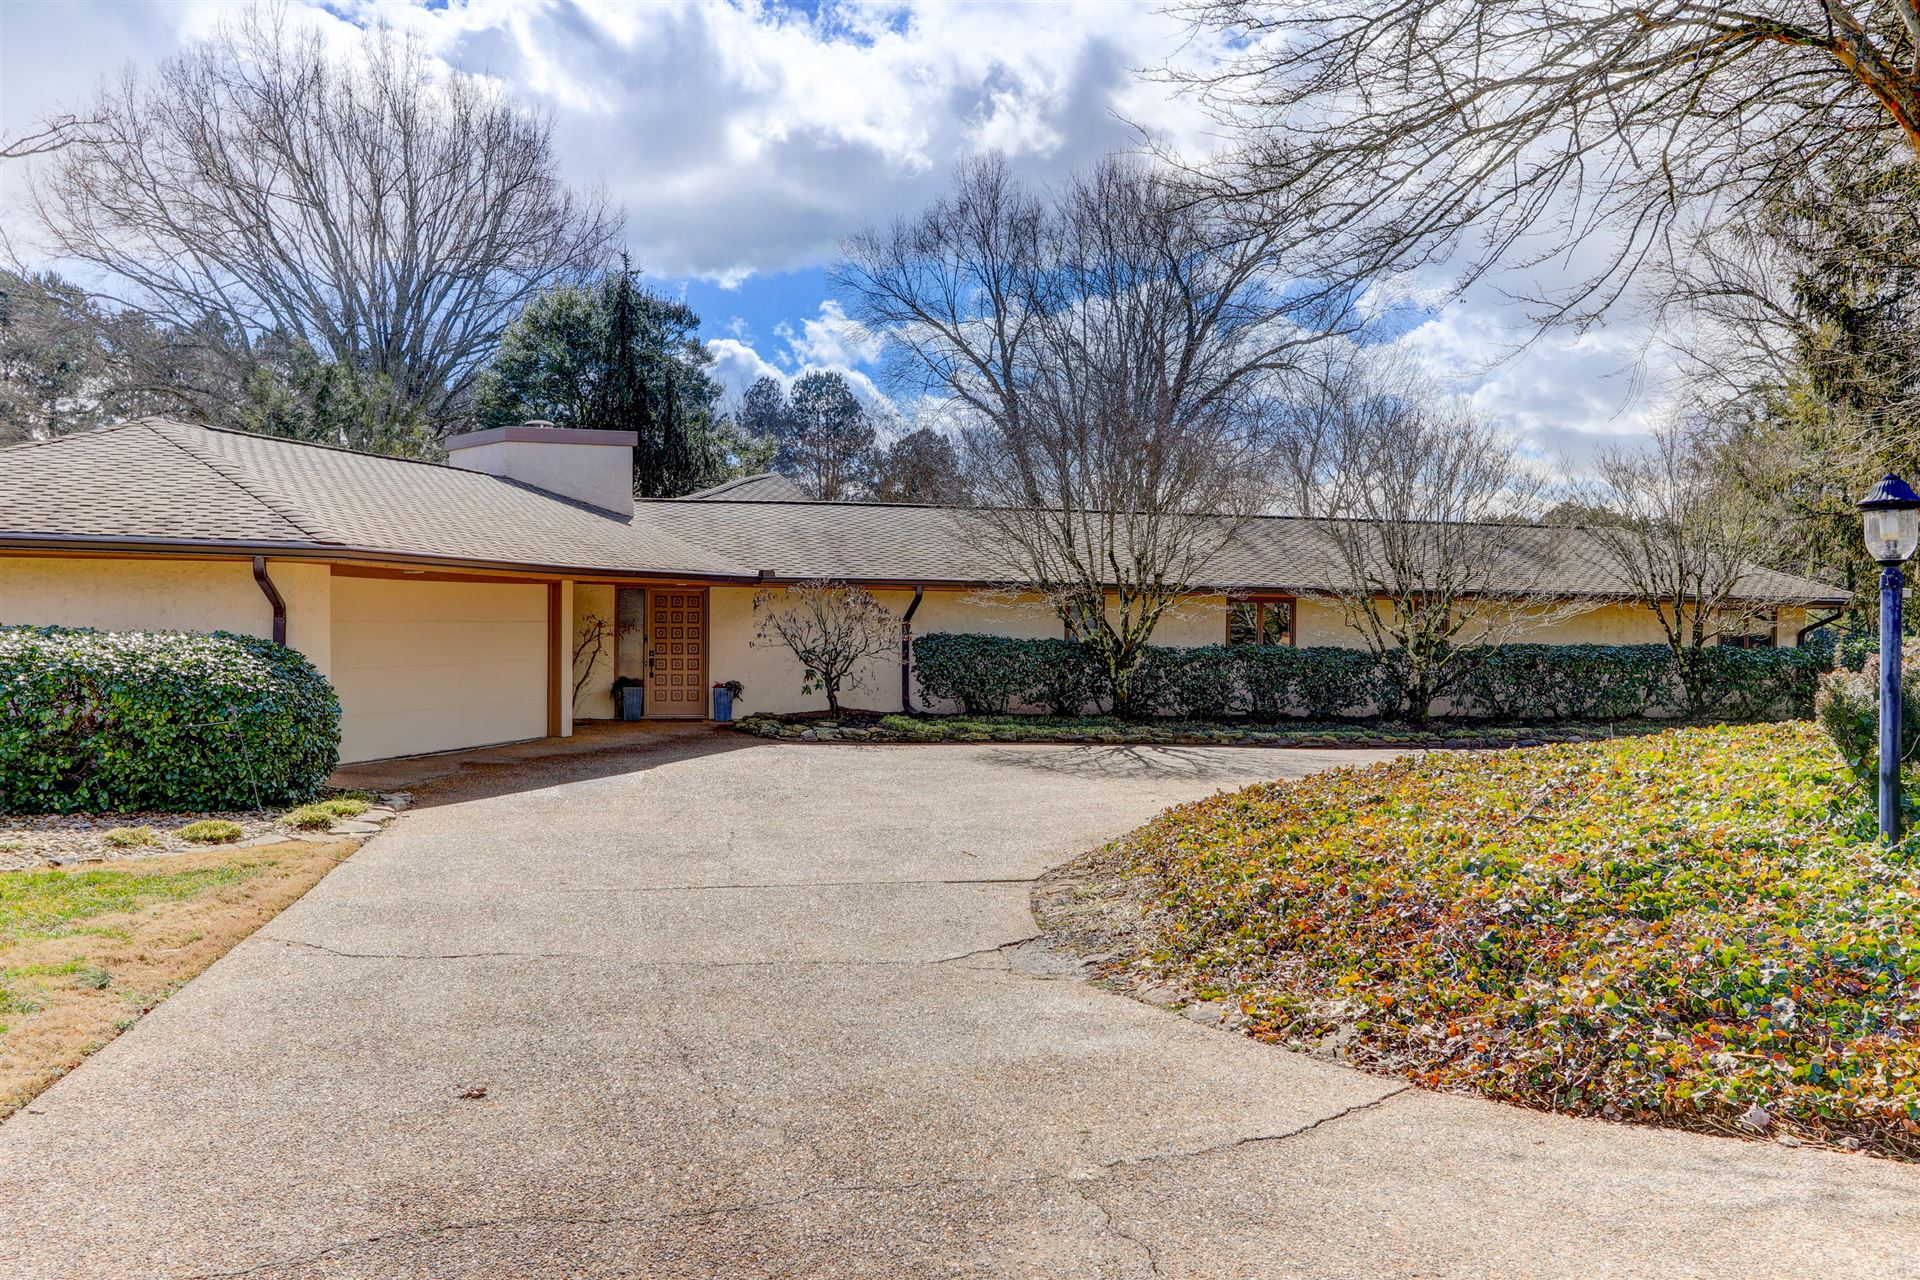 Photo of 12020 N Fox Den Drive, Knoxville, TN 37934 (MLS # 1143922)